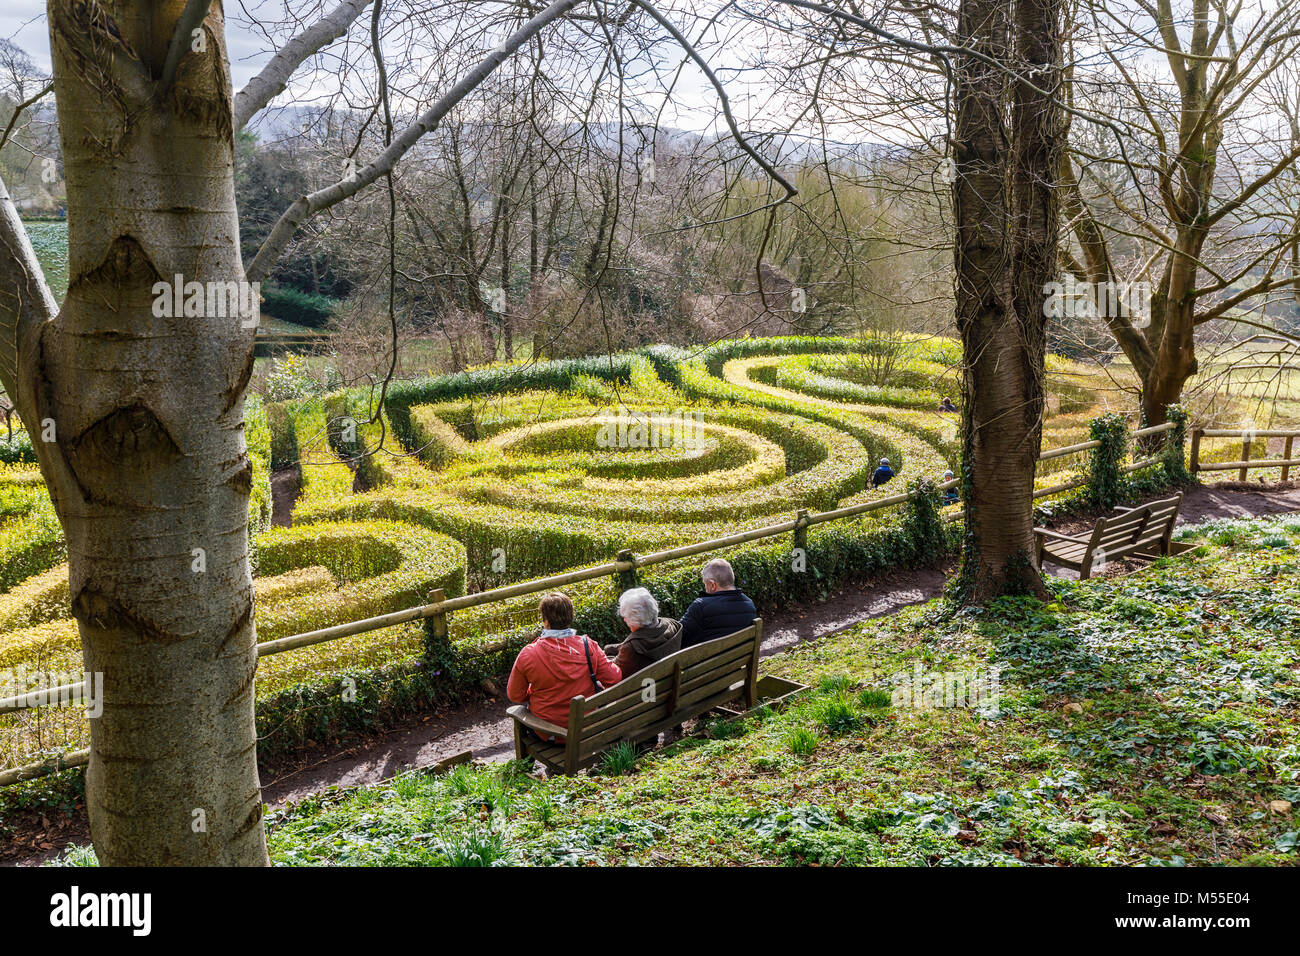 Three people sitting on a bench enjoying a view of The 250 Anniversary Maze at Painswick Rococo Garden, Painswick, - Stock Image